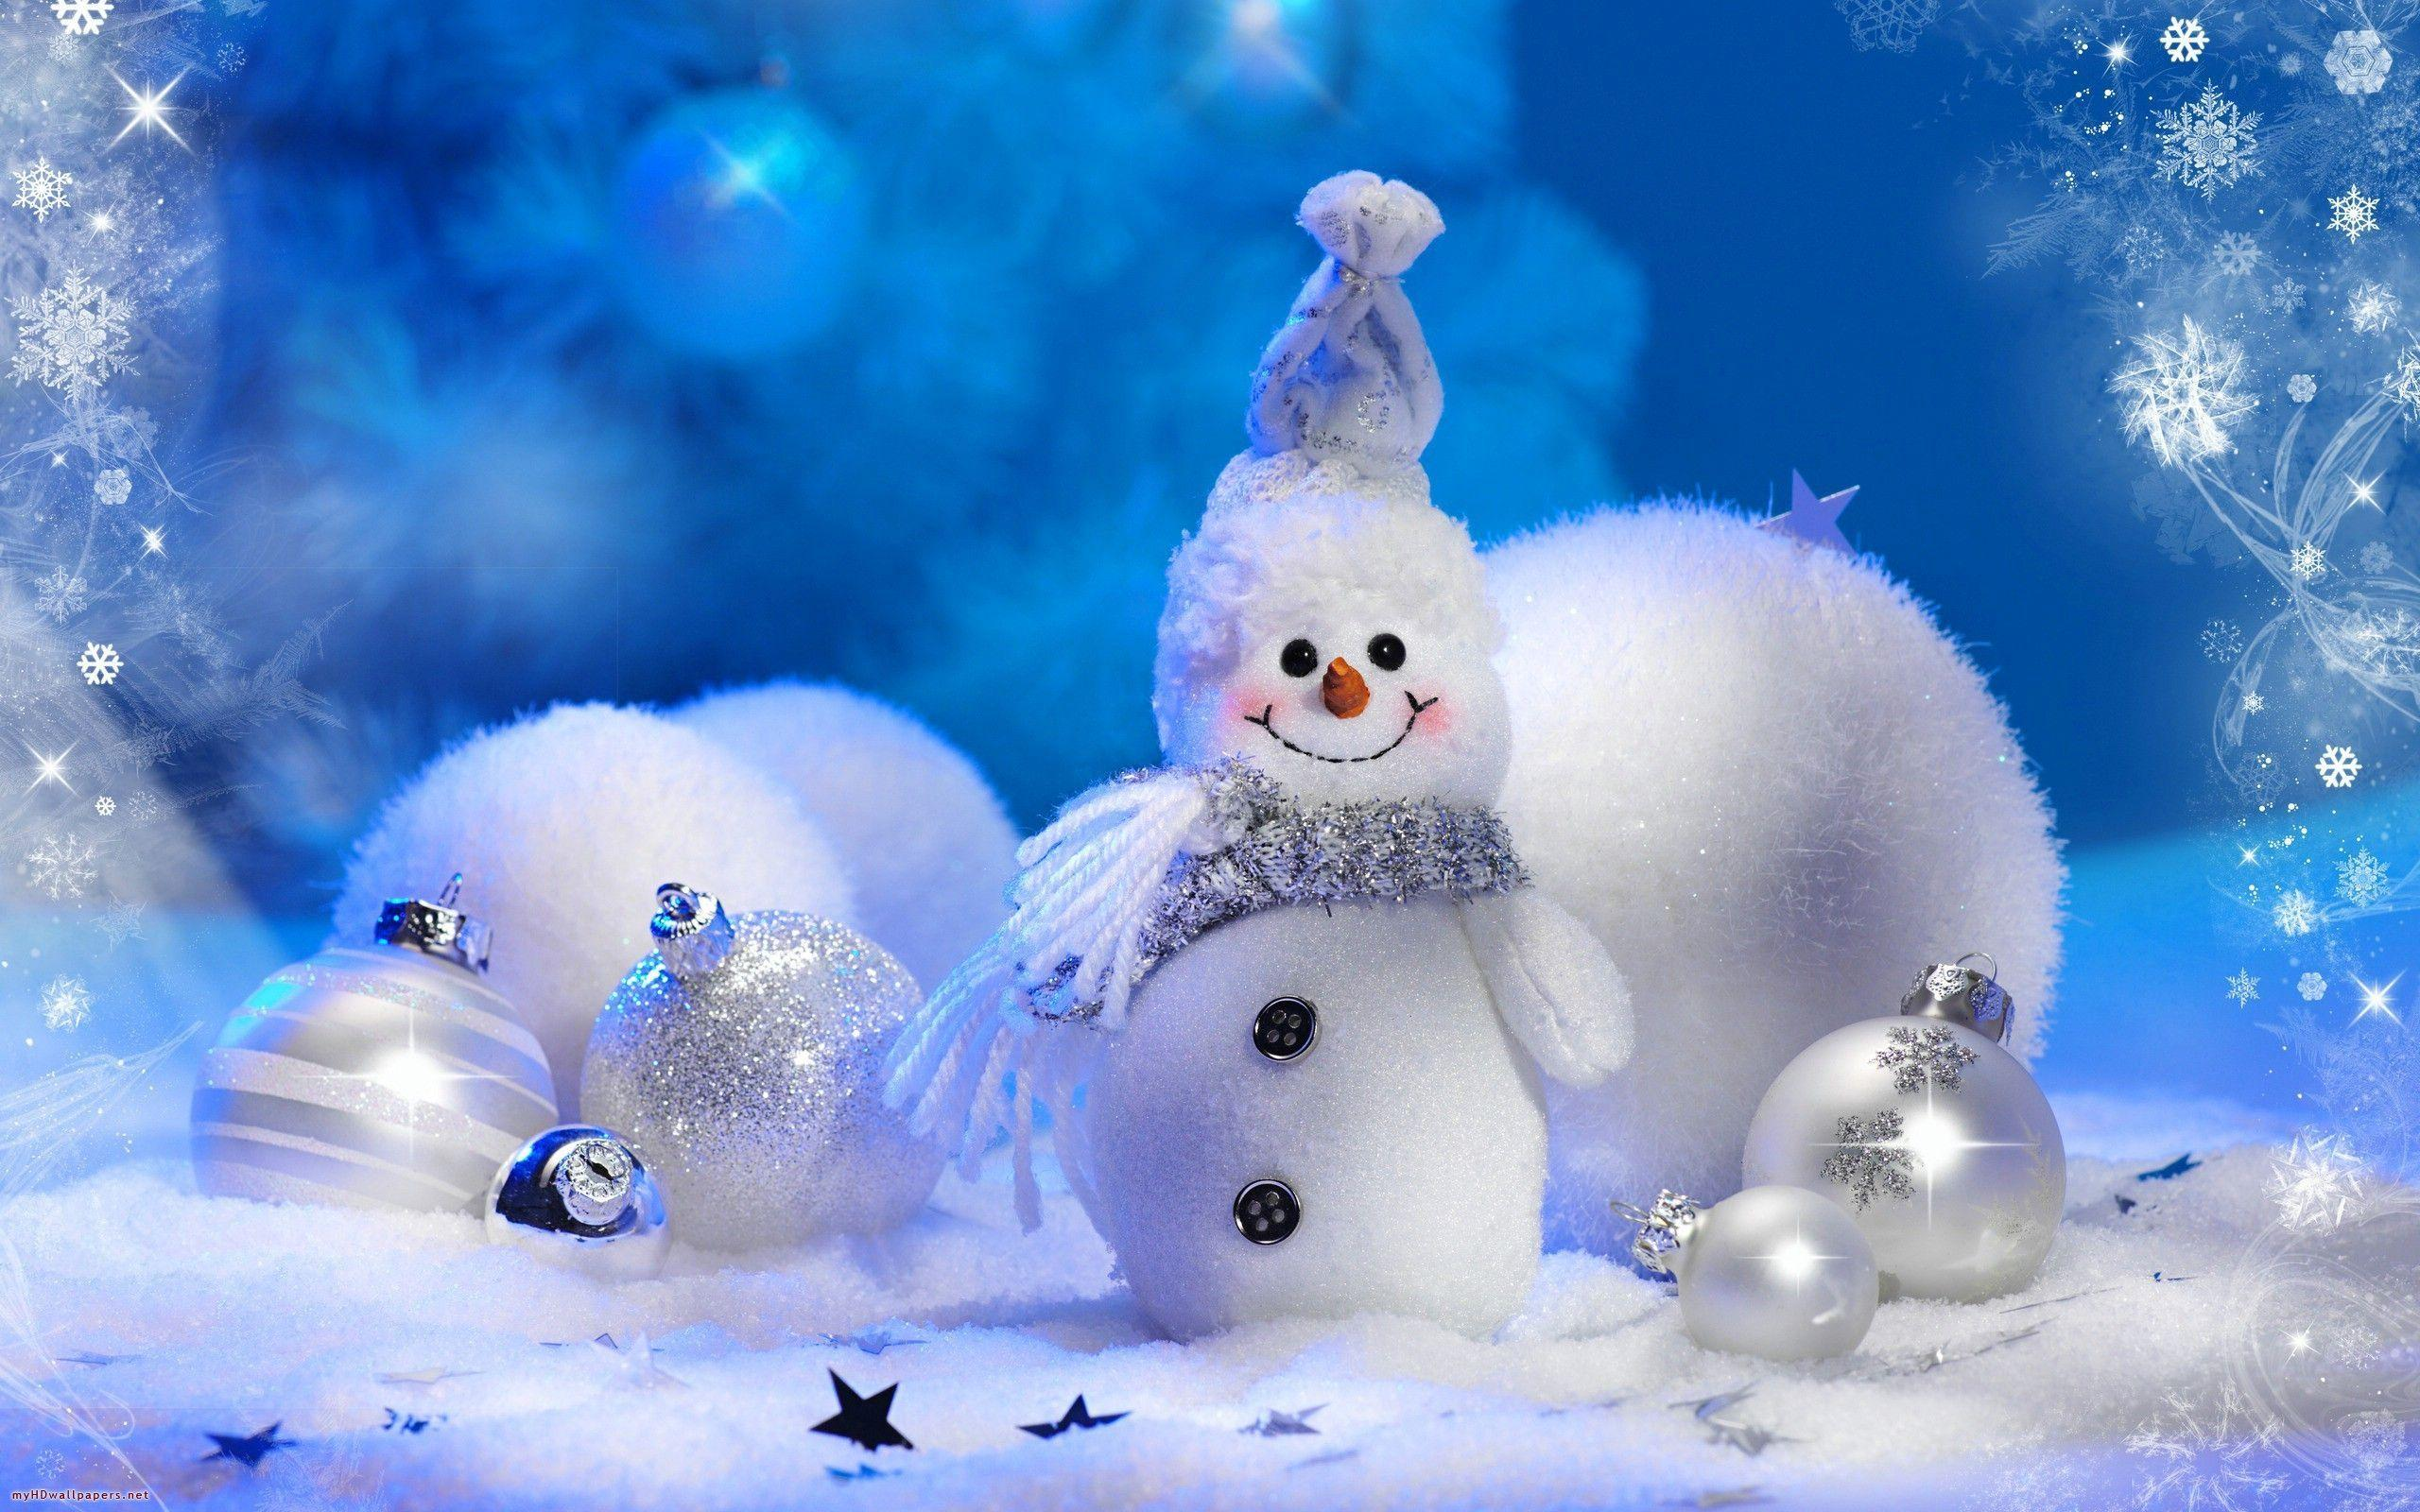 Related Pictures Funny Snowman Wallpapers Free Desktop Backgrounds